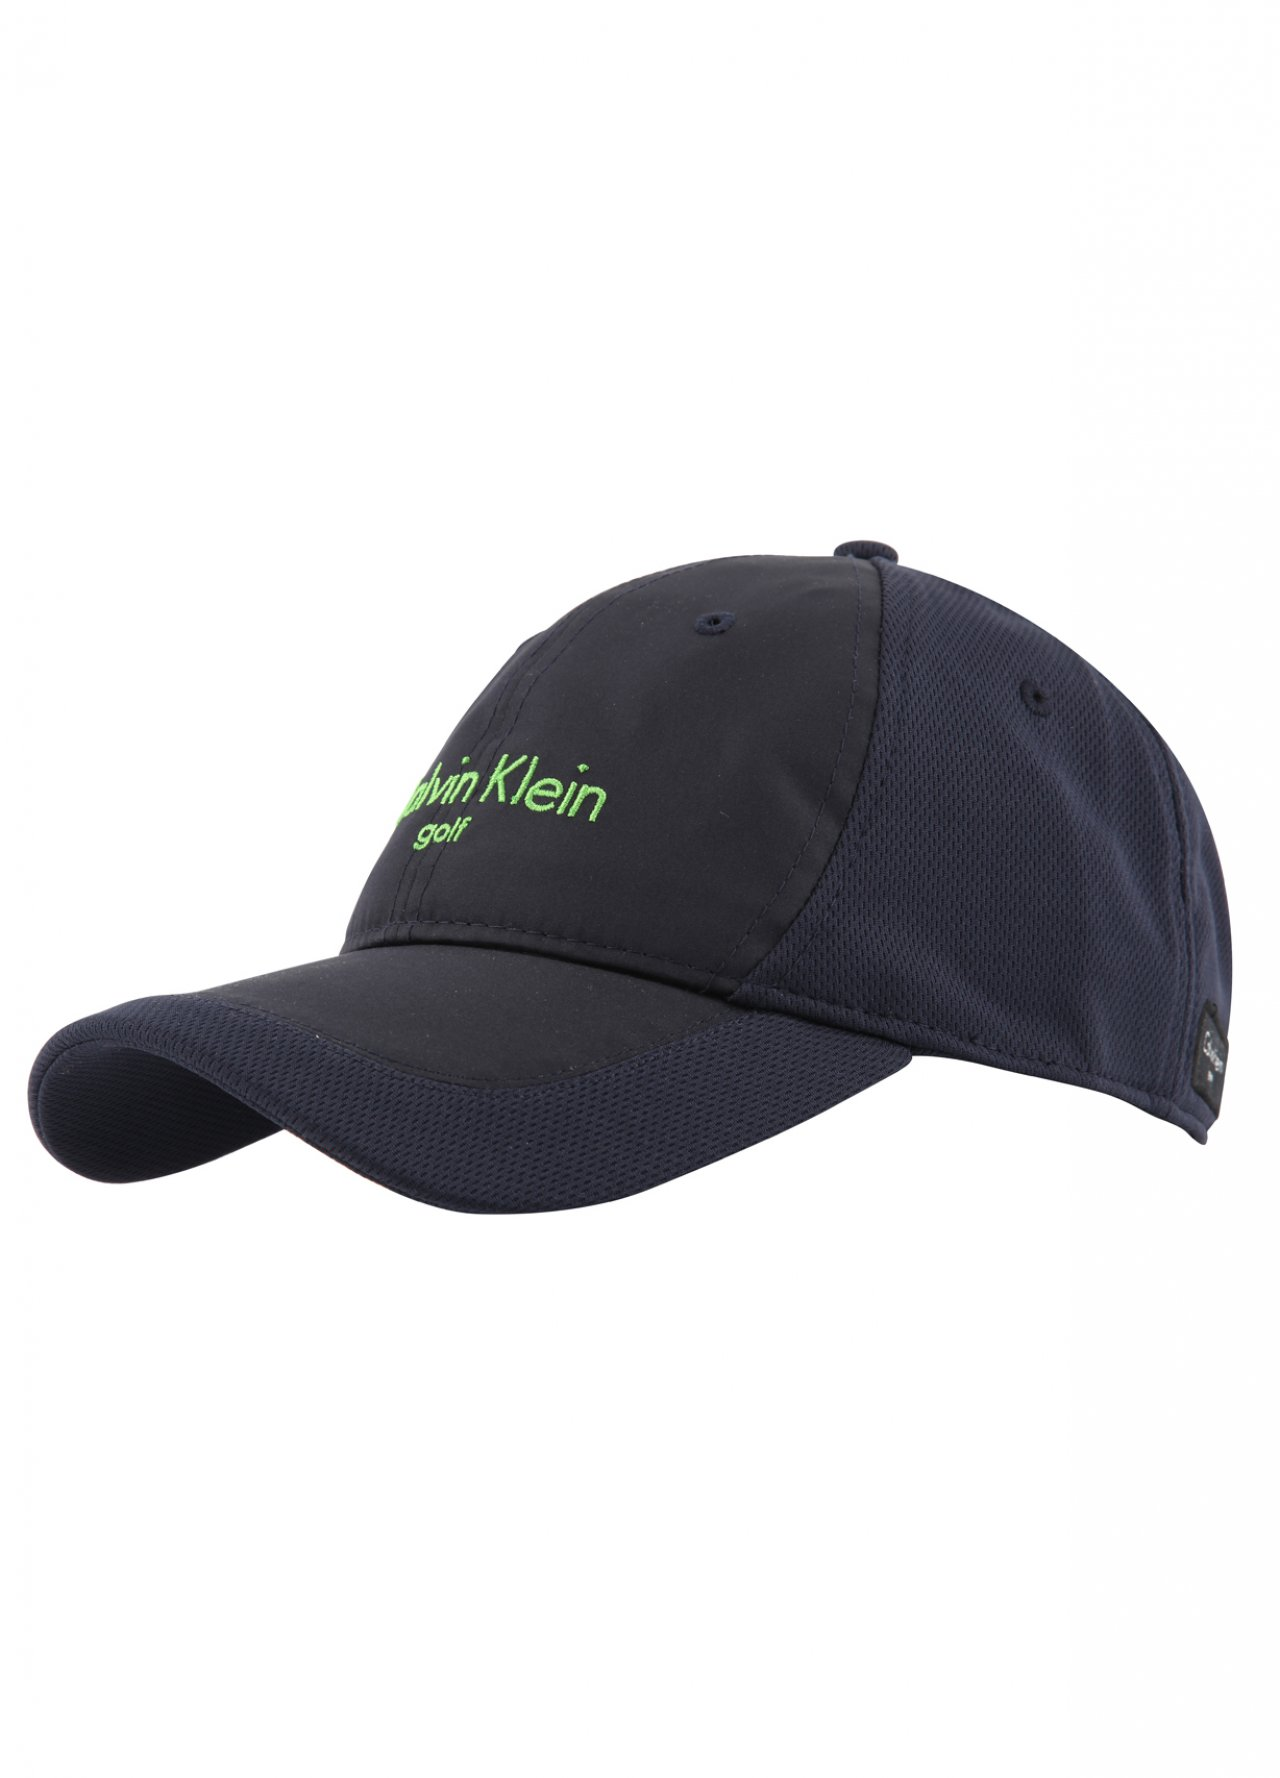 special offers county golf golf sale golf clothing discount golf clothes online golf. Black Bedroom Furniture Sets. Home Design Ideas